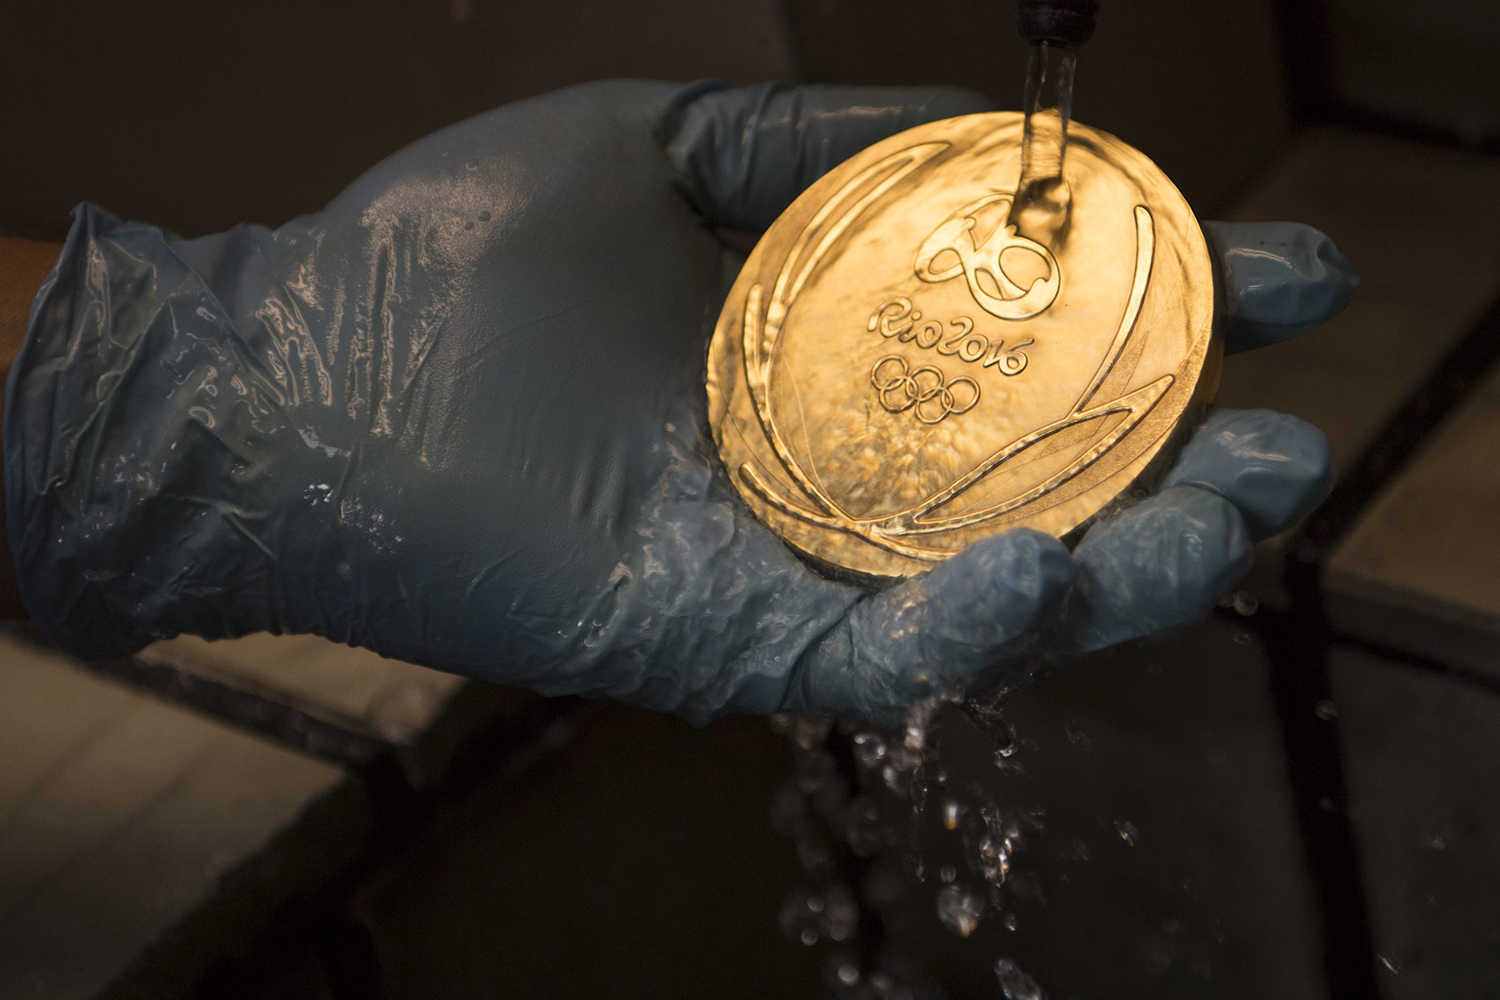 Here's How Much All the Olympic Medals the U.S. Has Won Are Worth by Weight